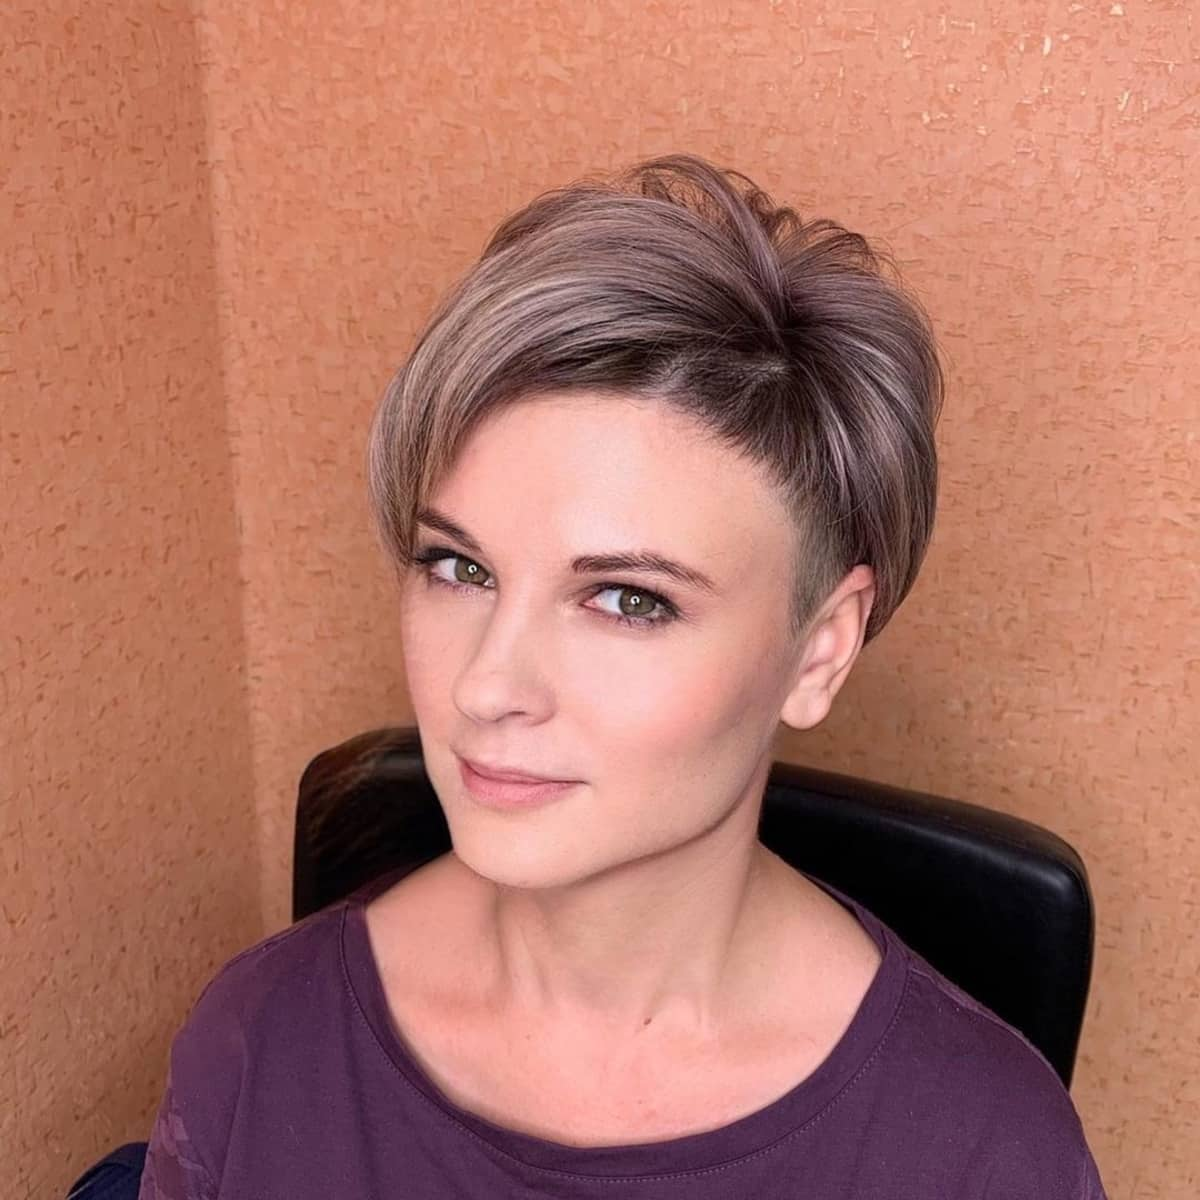 19 Very Short Haircuts For Women Trending In 2021